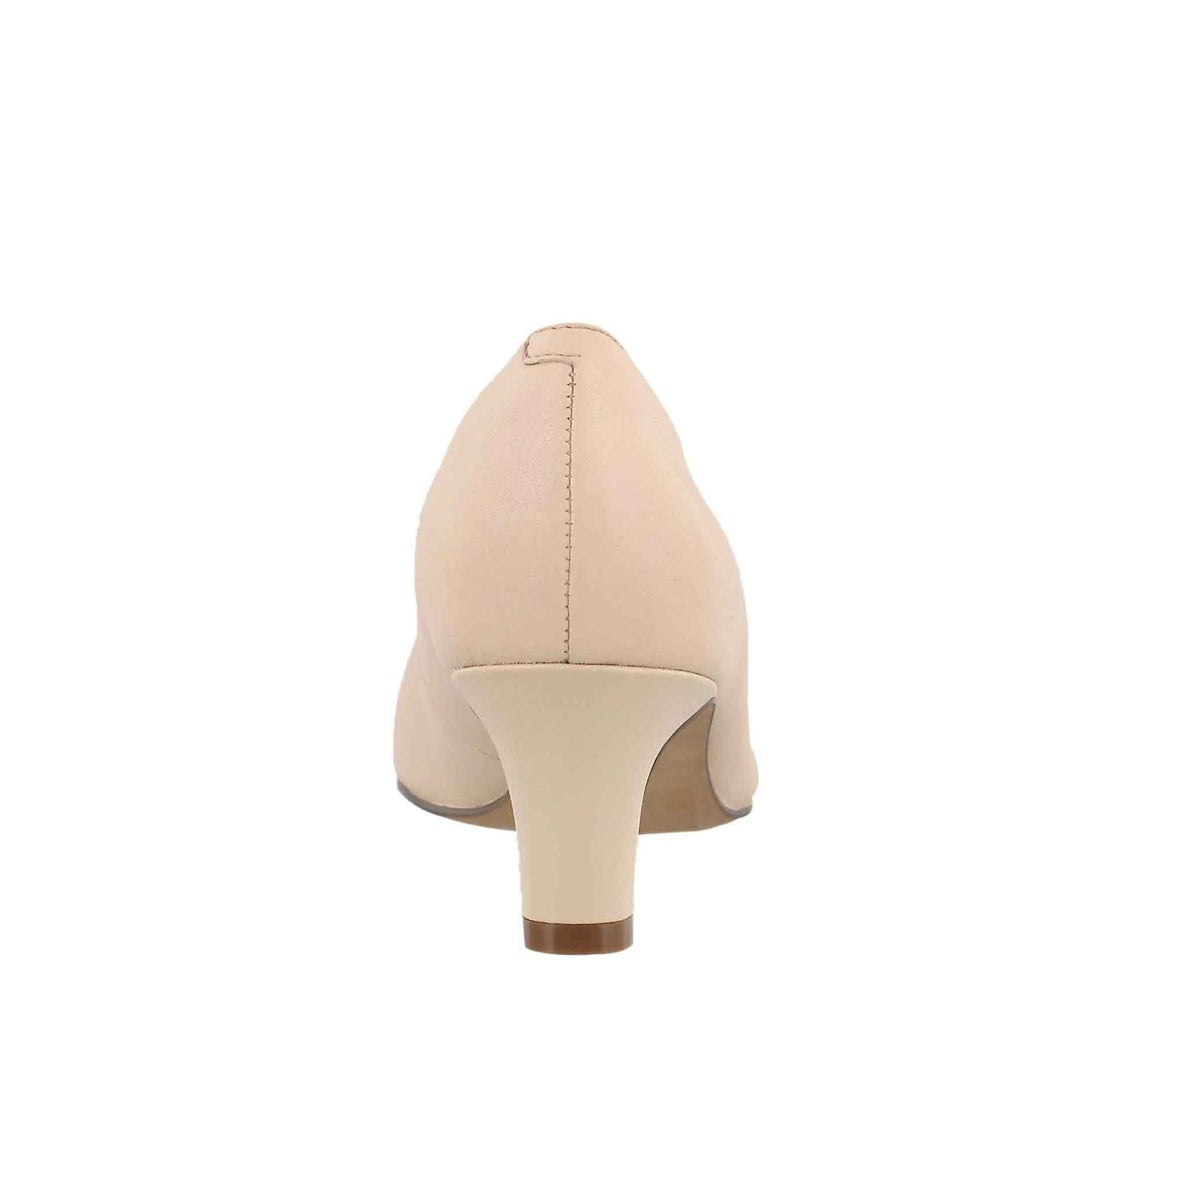 Lds Crewso Wick nude pnk lthr dress heel